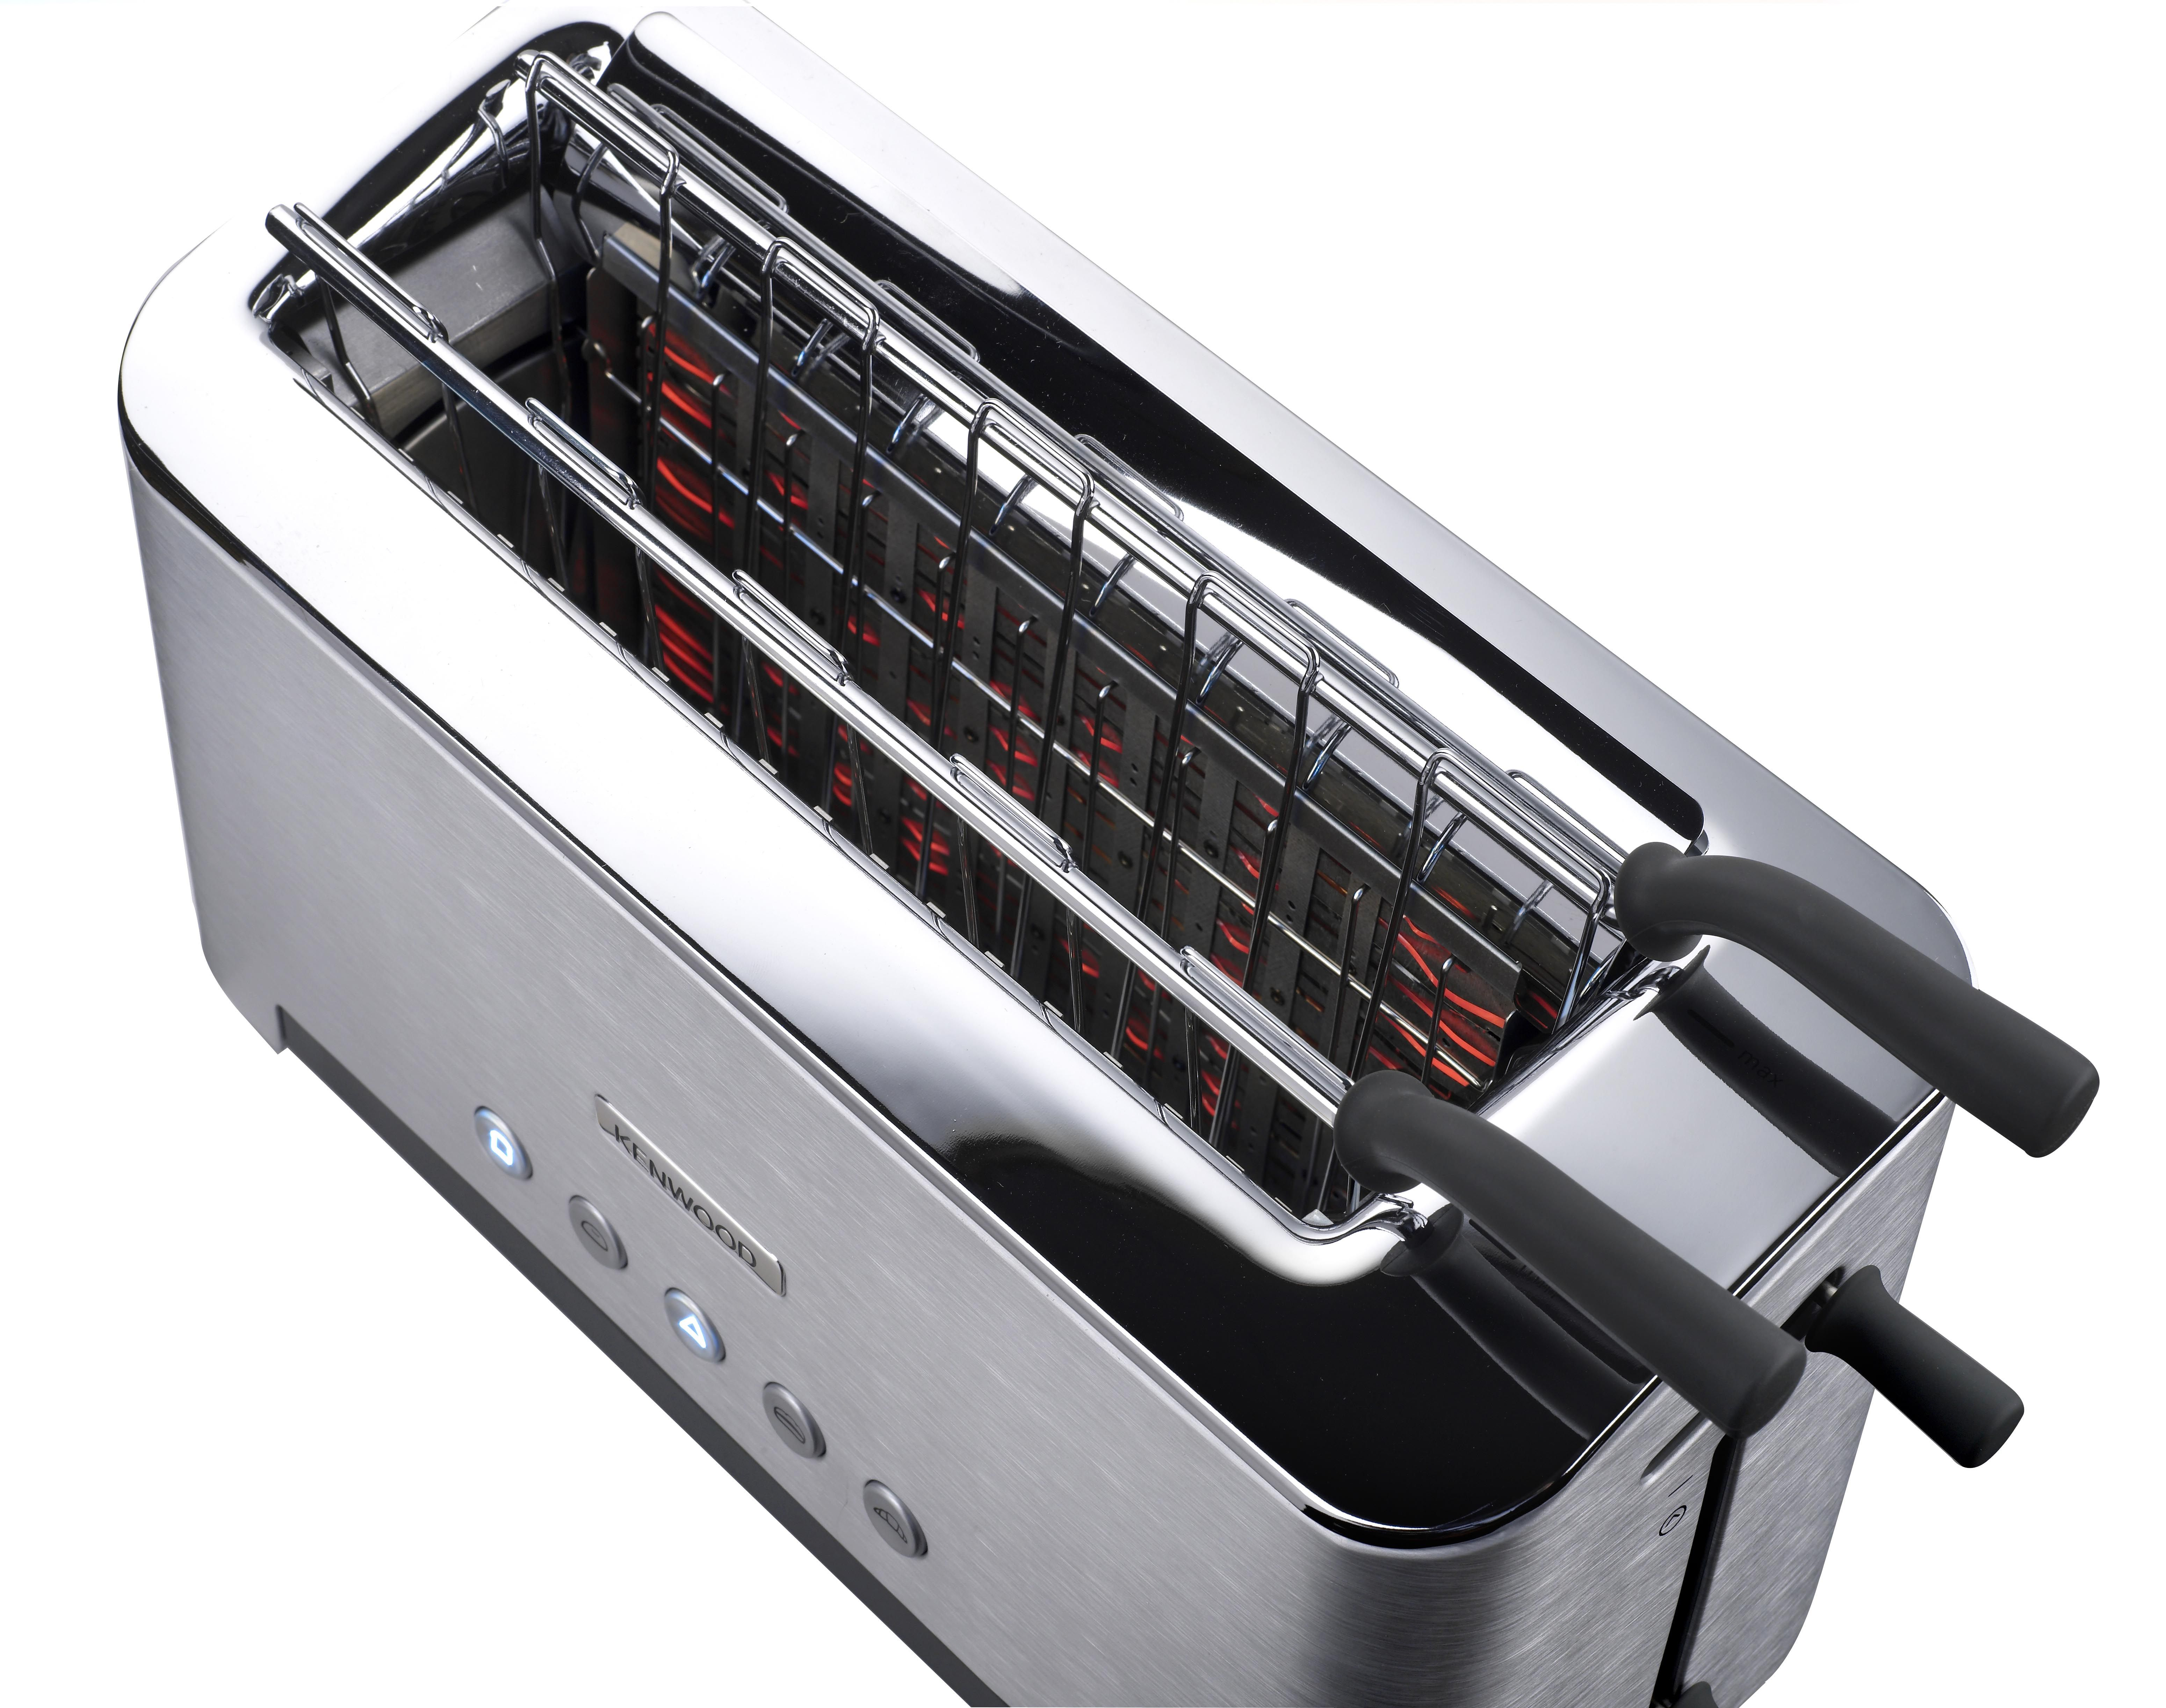 toaster foodservice permul equipment volume industrial high conveyor c product q